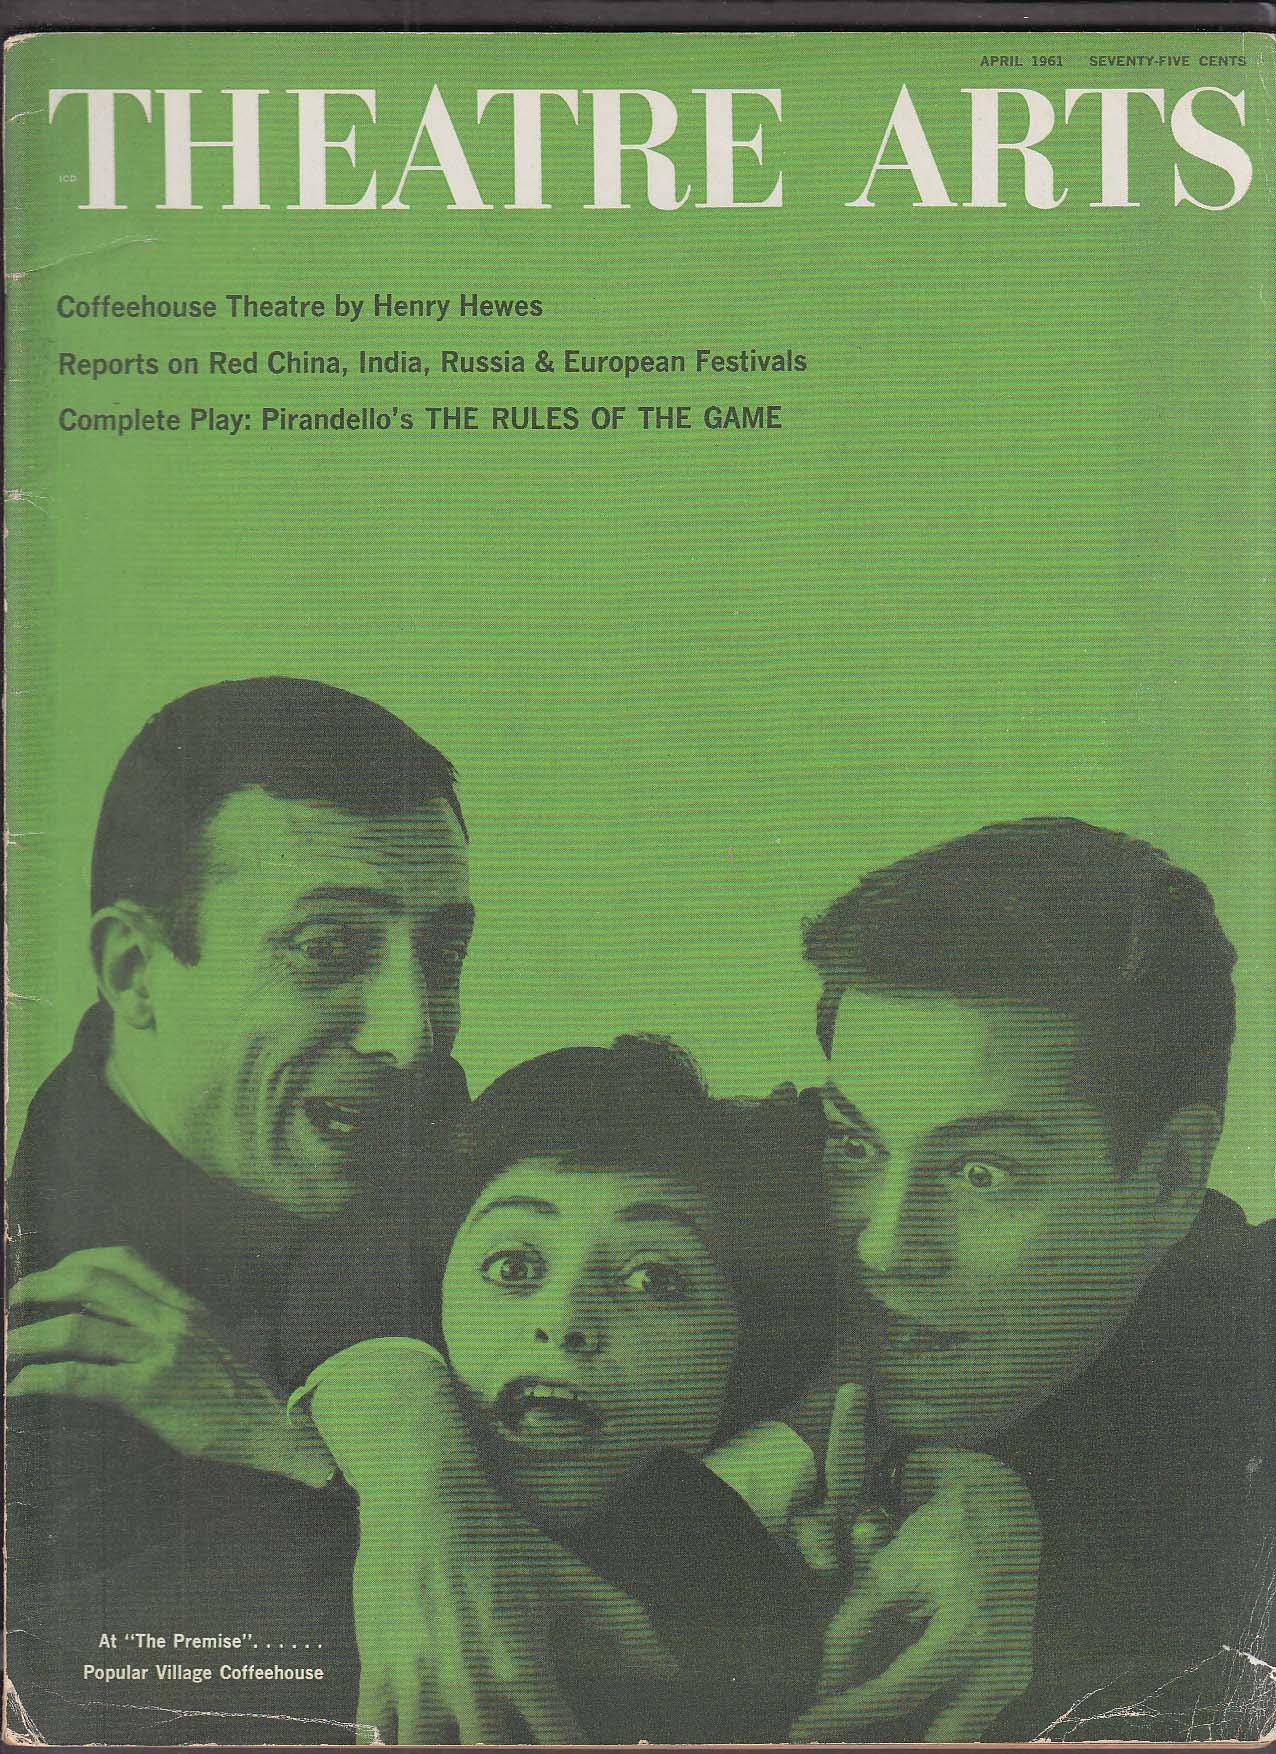 Image for THEATRE ARTS Pirandello Joan Darling George Segal ++ 4 1961